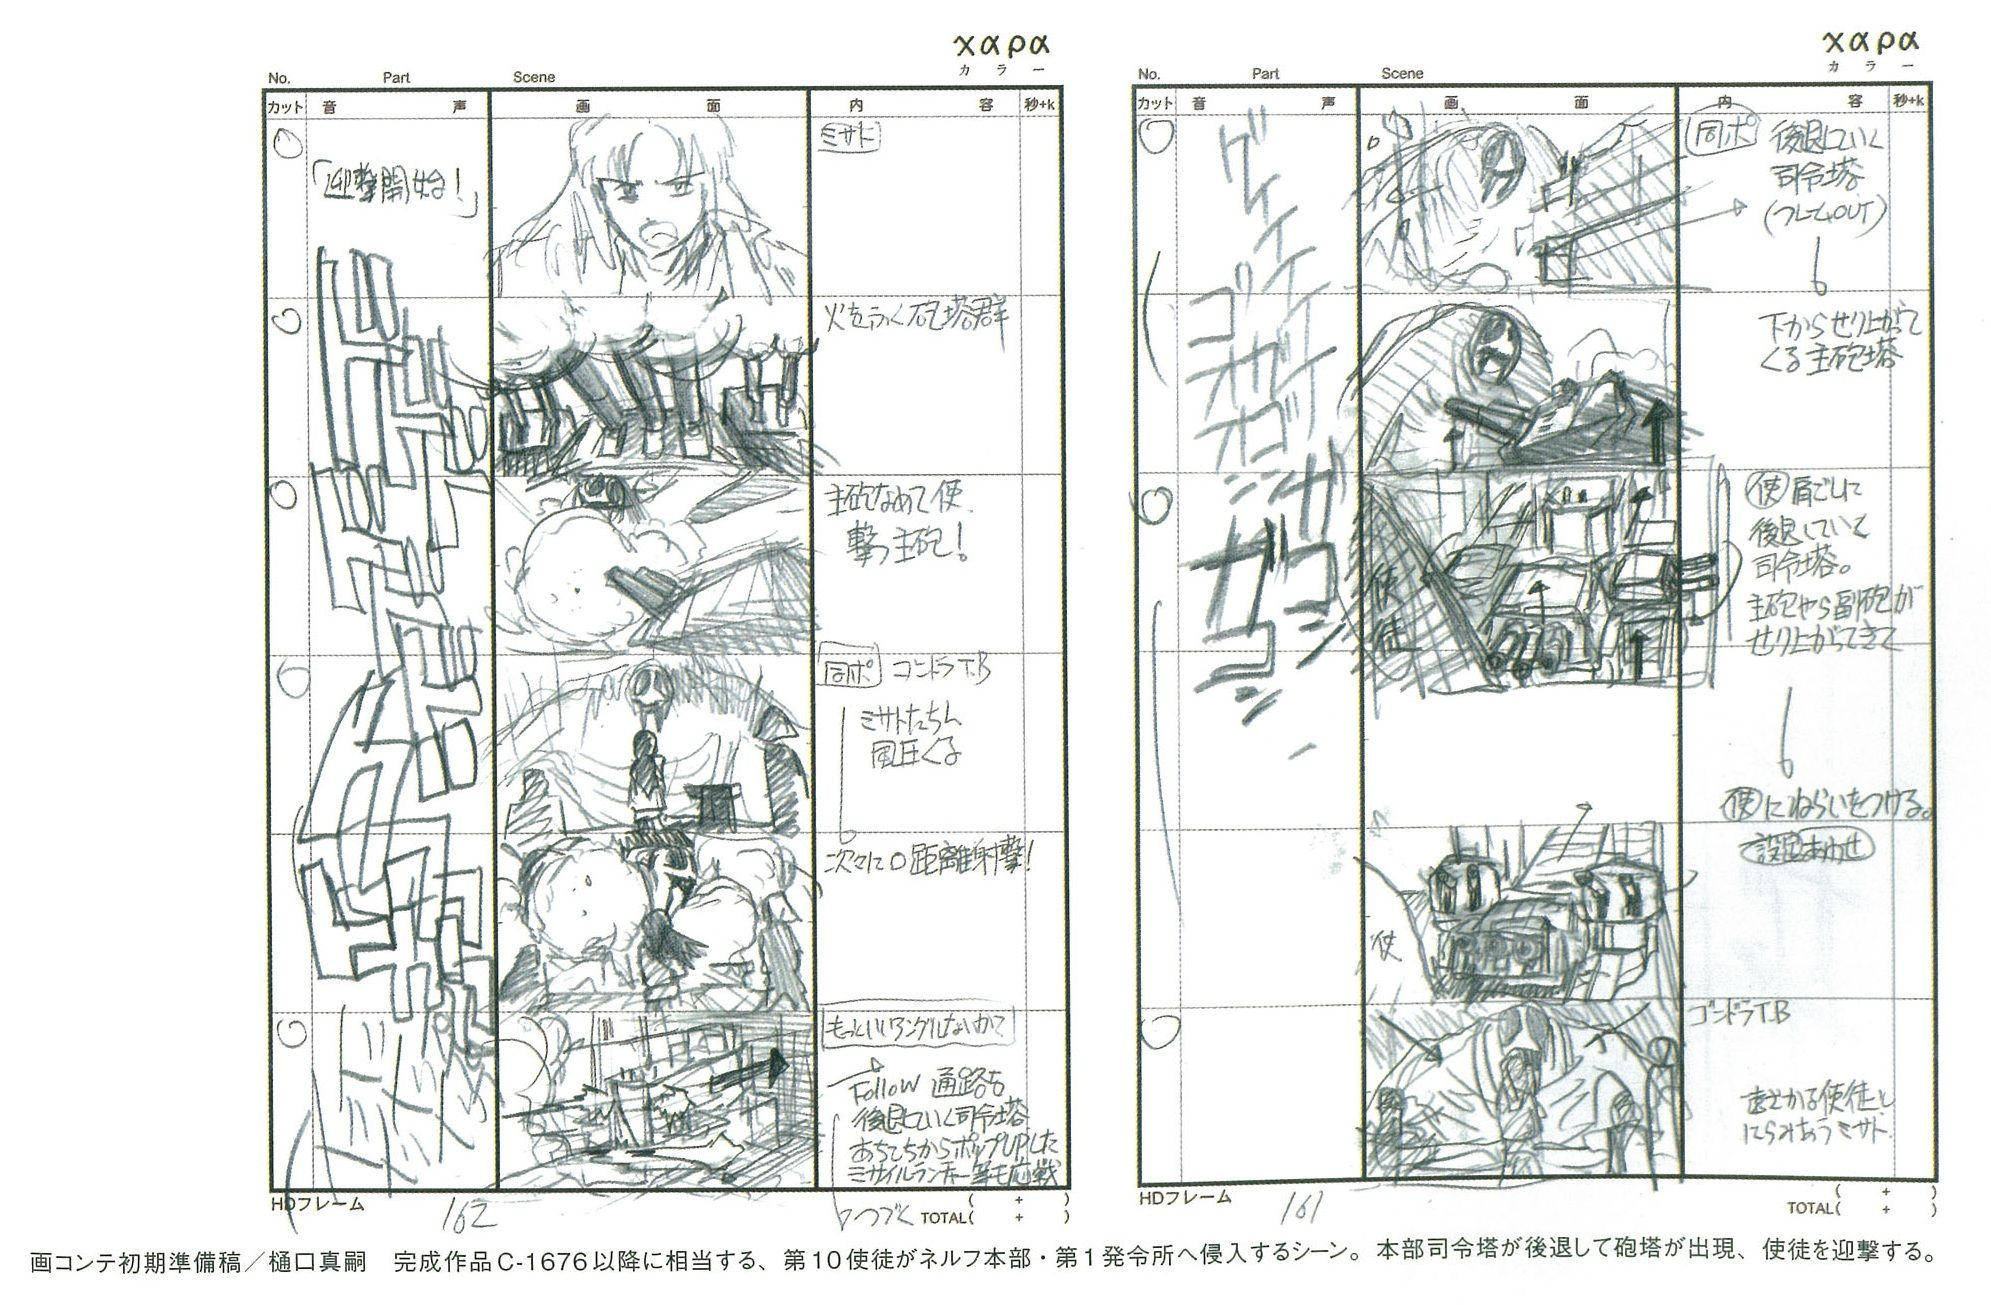 Winten Story Boards Have Graphic Sequence Since It